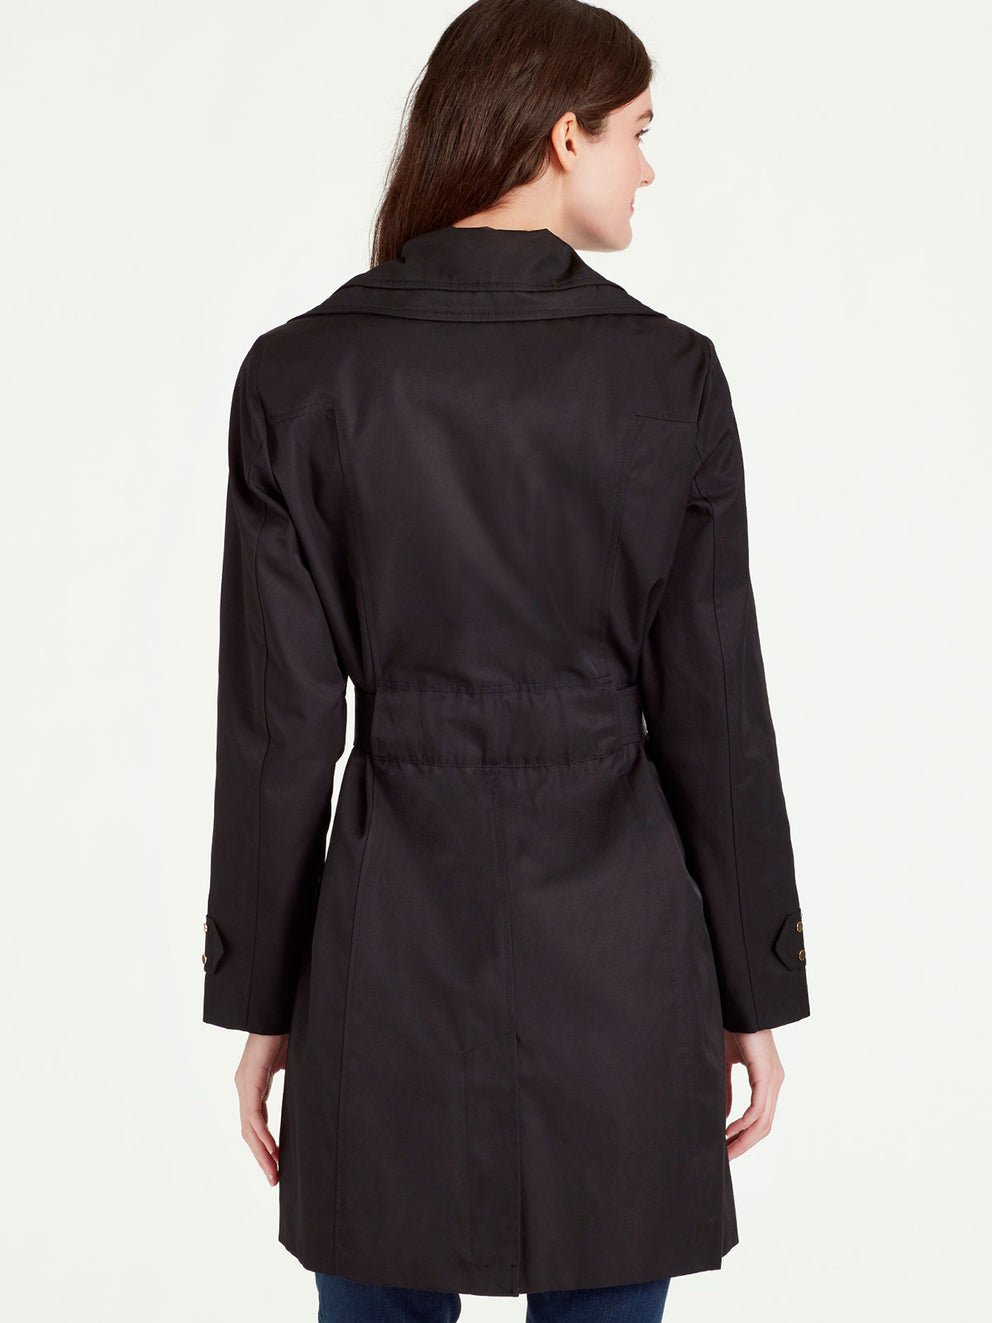 The Jones New York Double Collar Rain Trench in color Black - Image Position 3